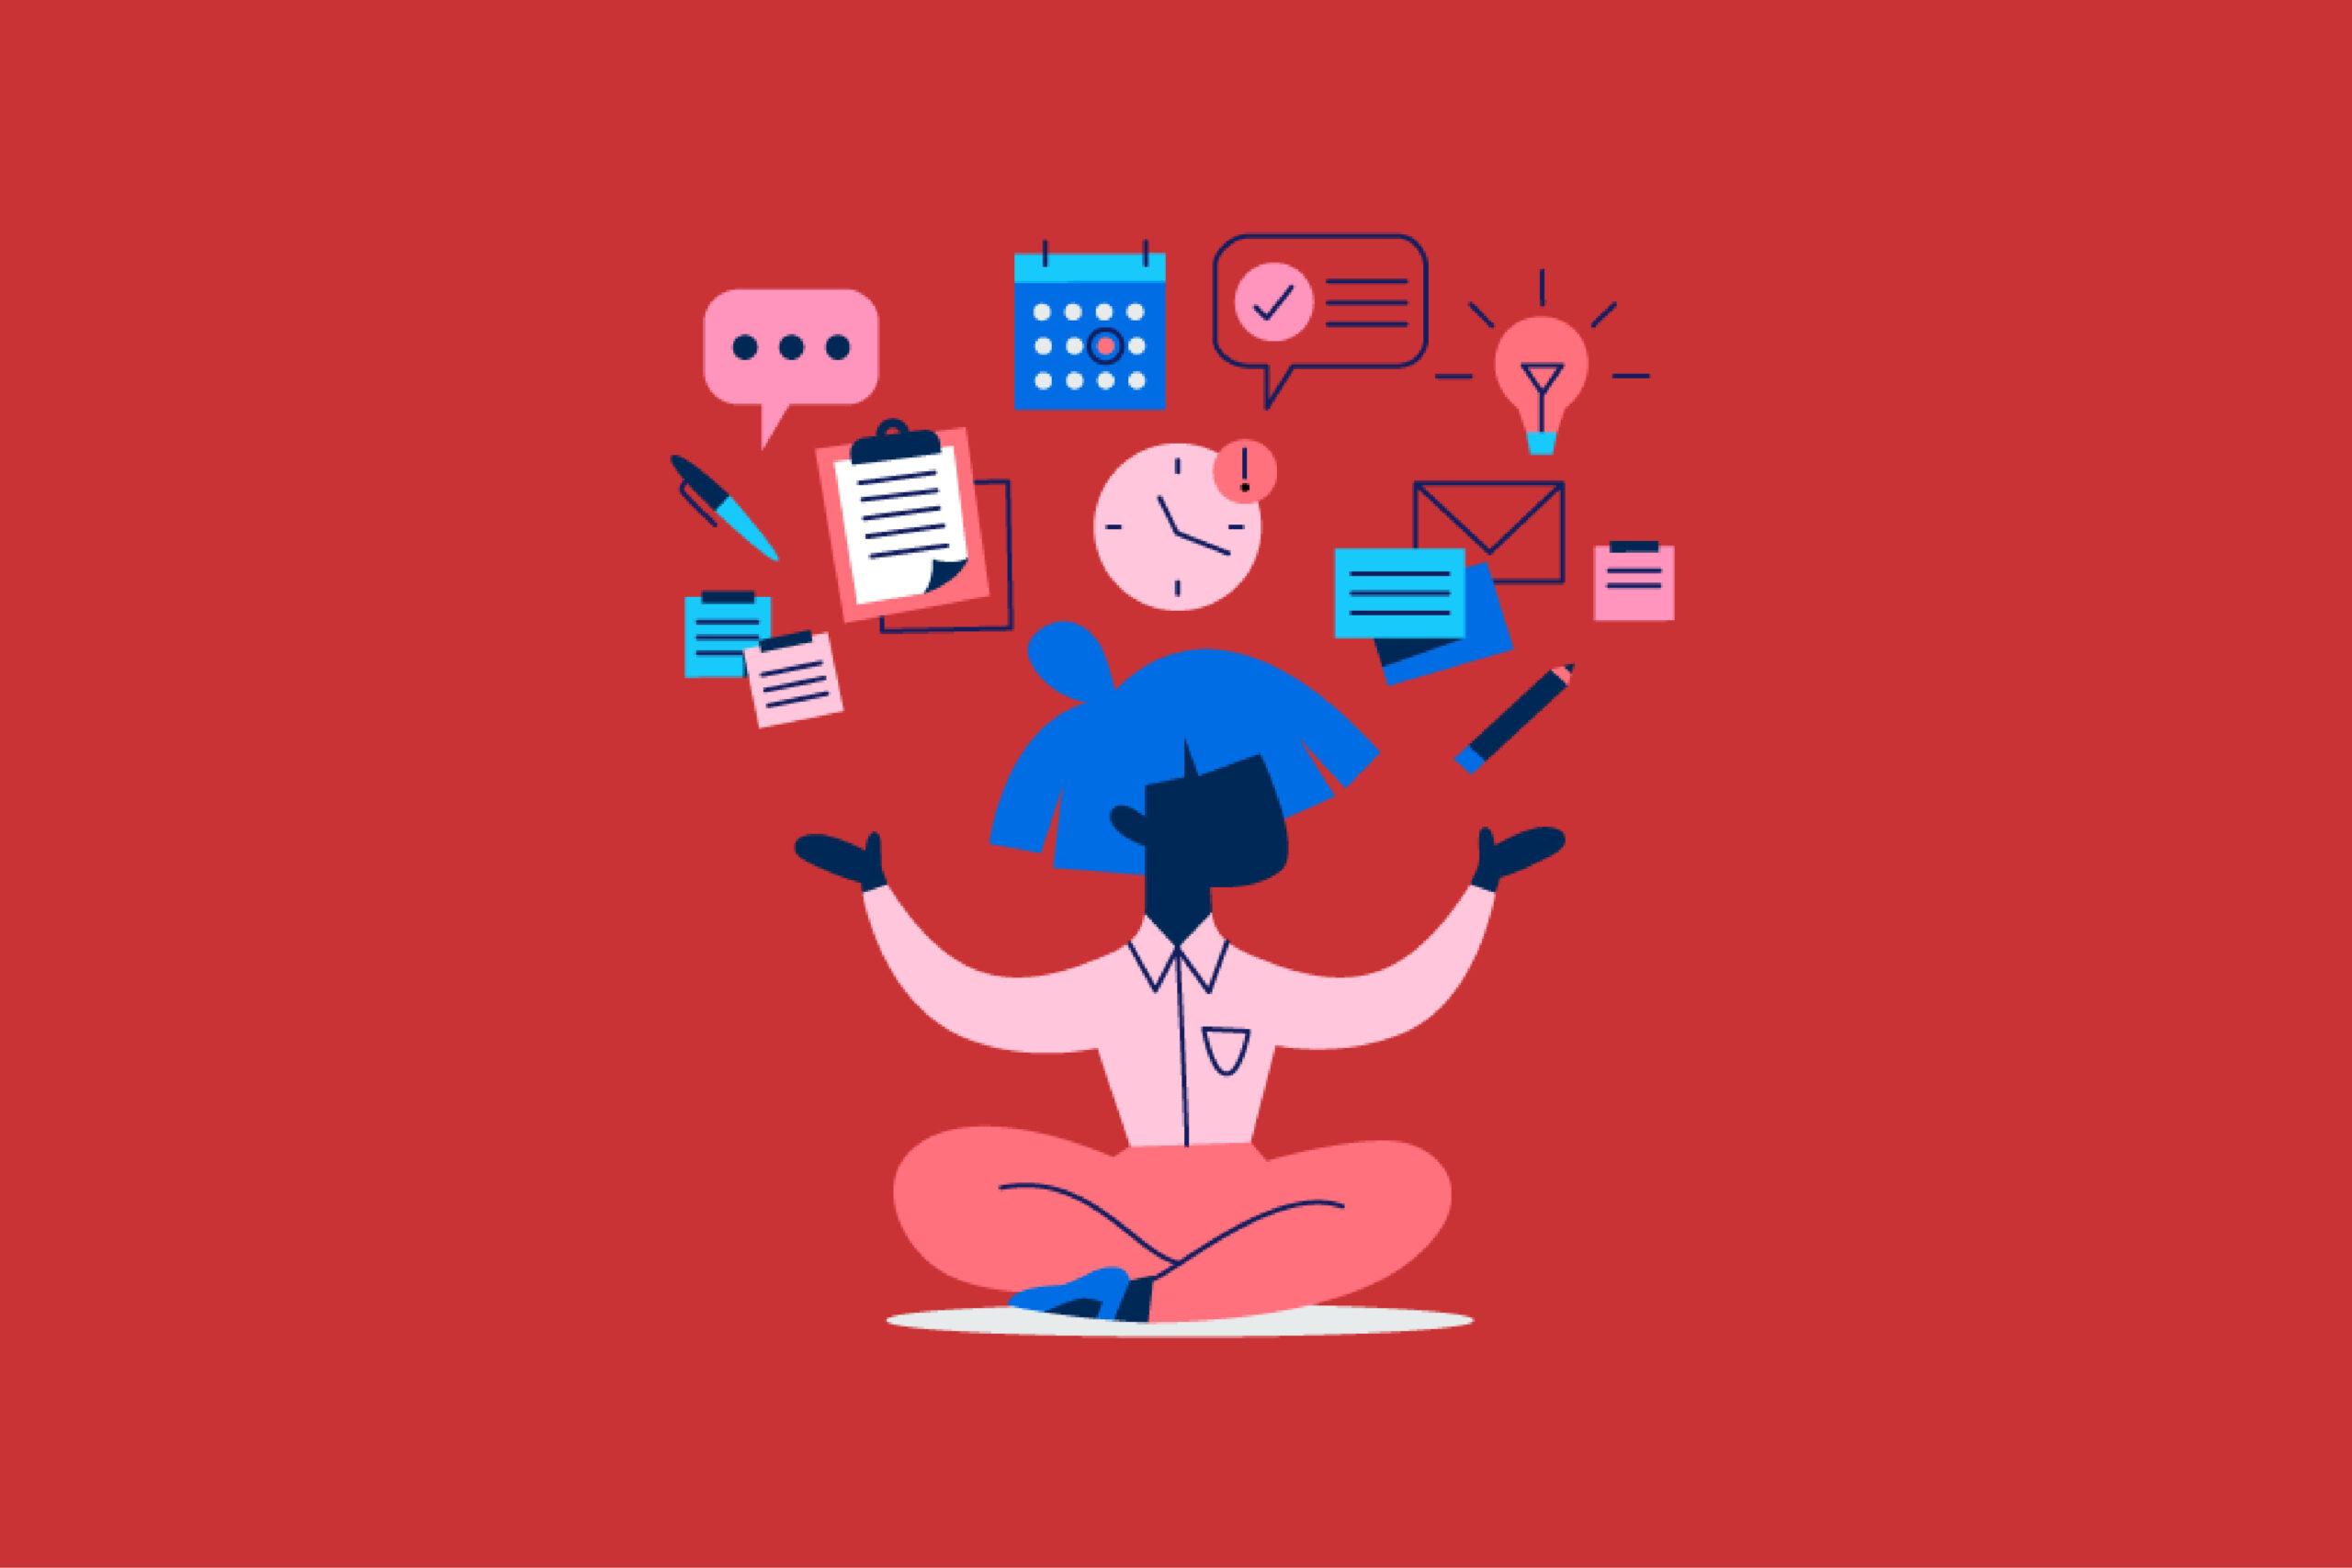 What would we do without… Asana?